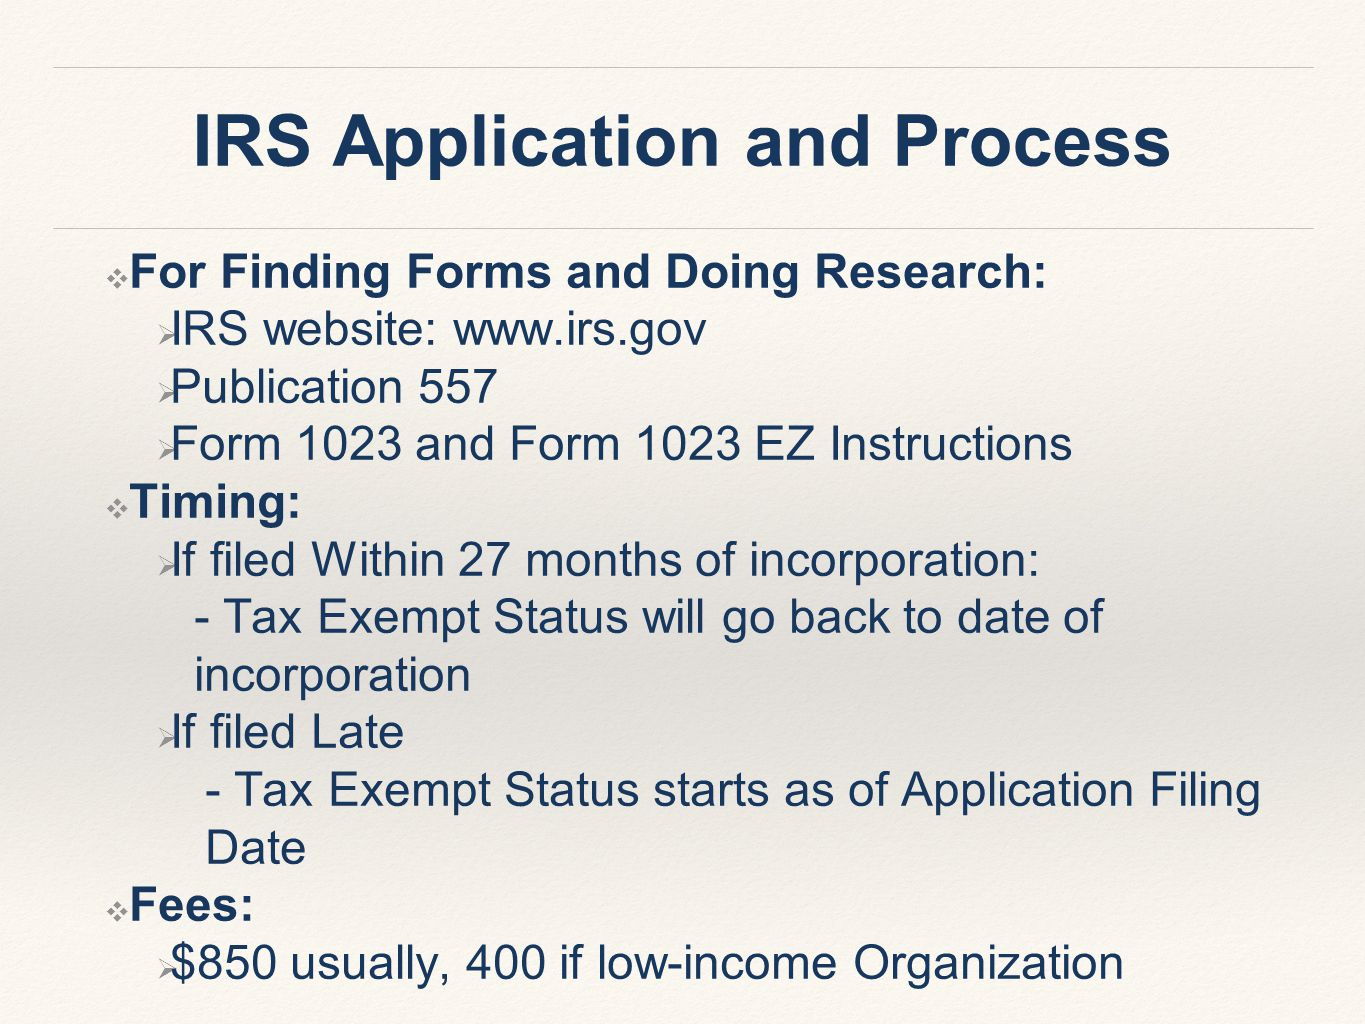 IRS Application and Process ❖ For Finding Forms and Doing Research:  IRS website: www.irs.gov  Publication 557  Form 1023 and Form 1023 EZ Instructions ❖ Timing:  If filed Within 27 months of incorporation: - Tax Exempt Status will go back to date of incorporation  If filed Late - Tax Exempt Status starts as of Application Filing Date ❖ Fees:  $850 usually, 400 if low-income Organization